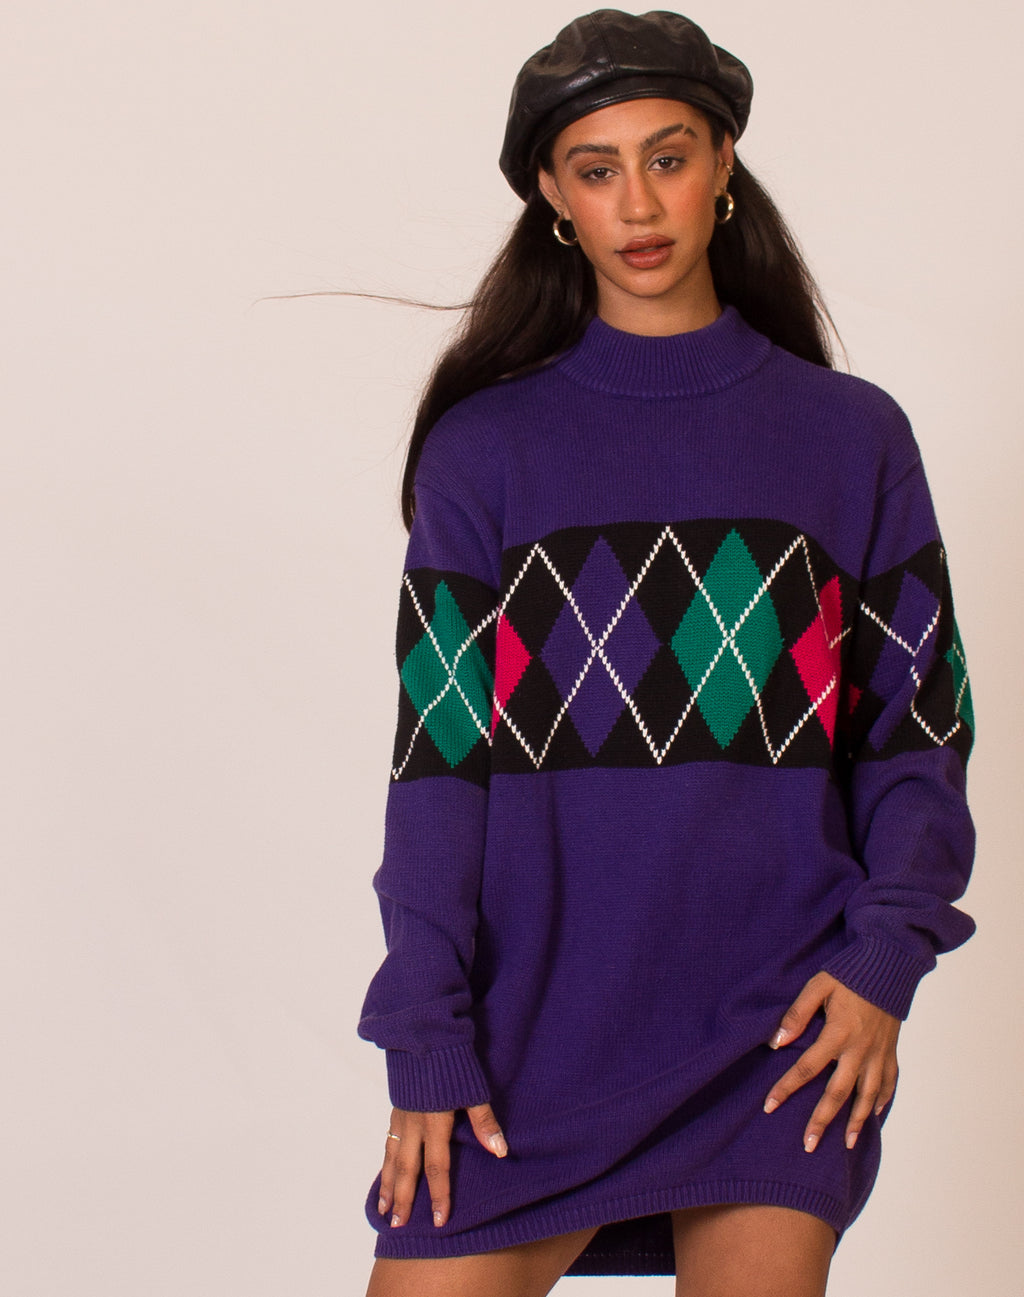 PURPLE ARGYLE SWEATER